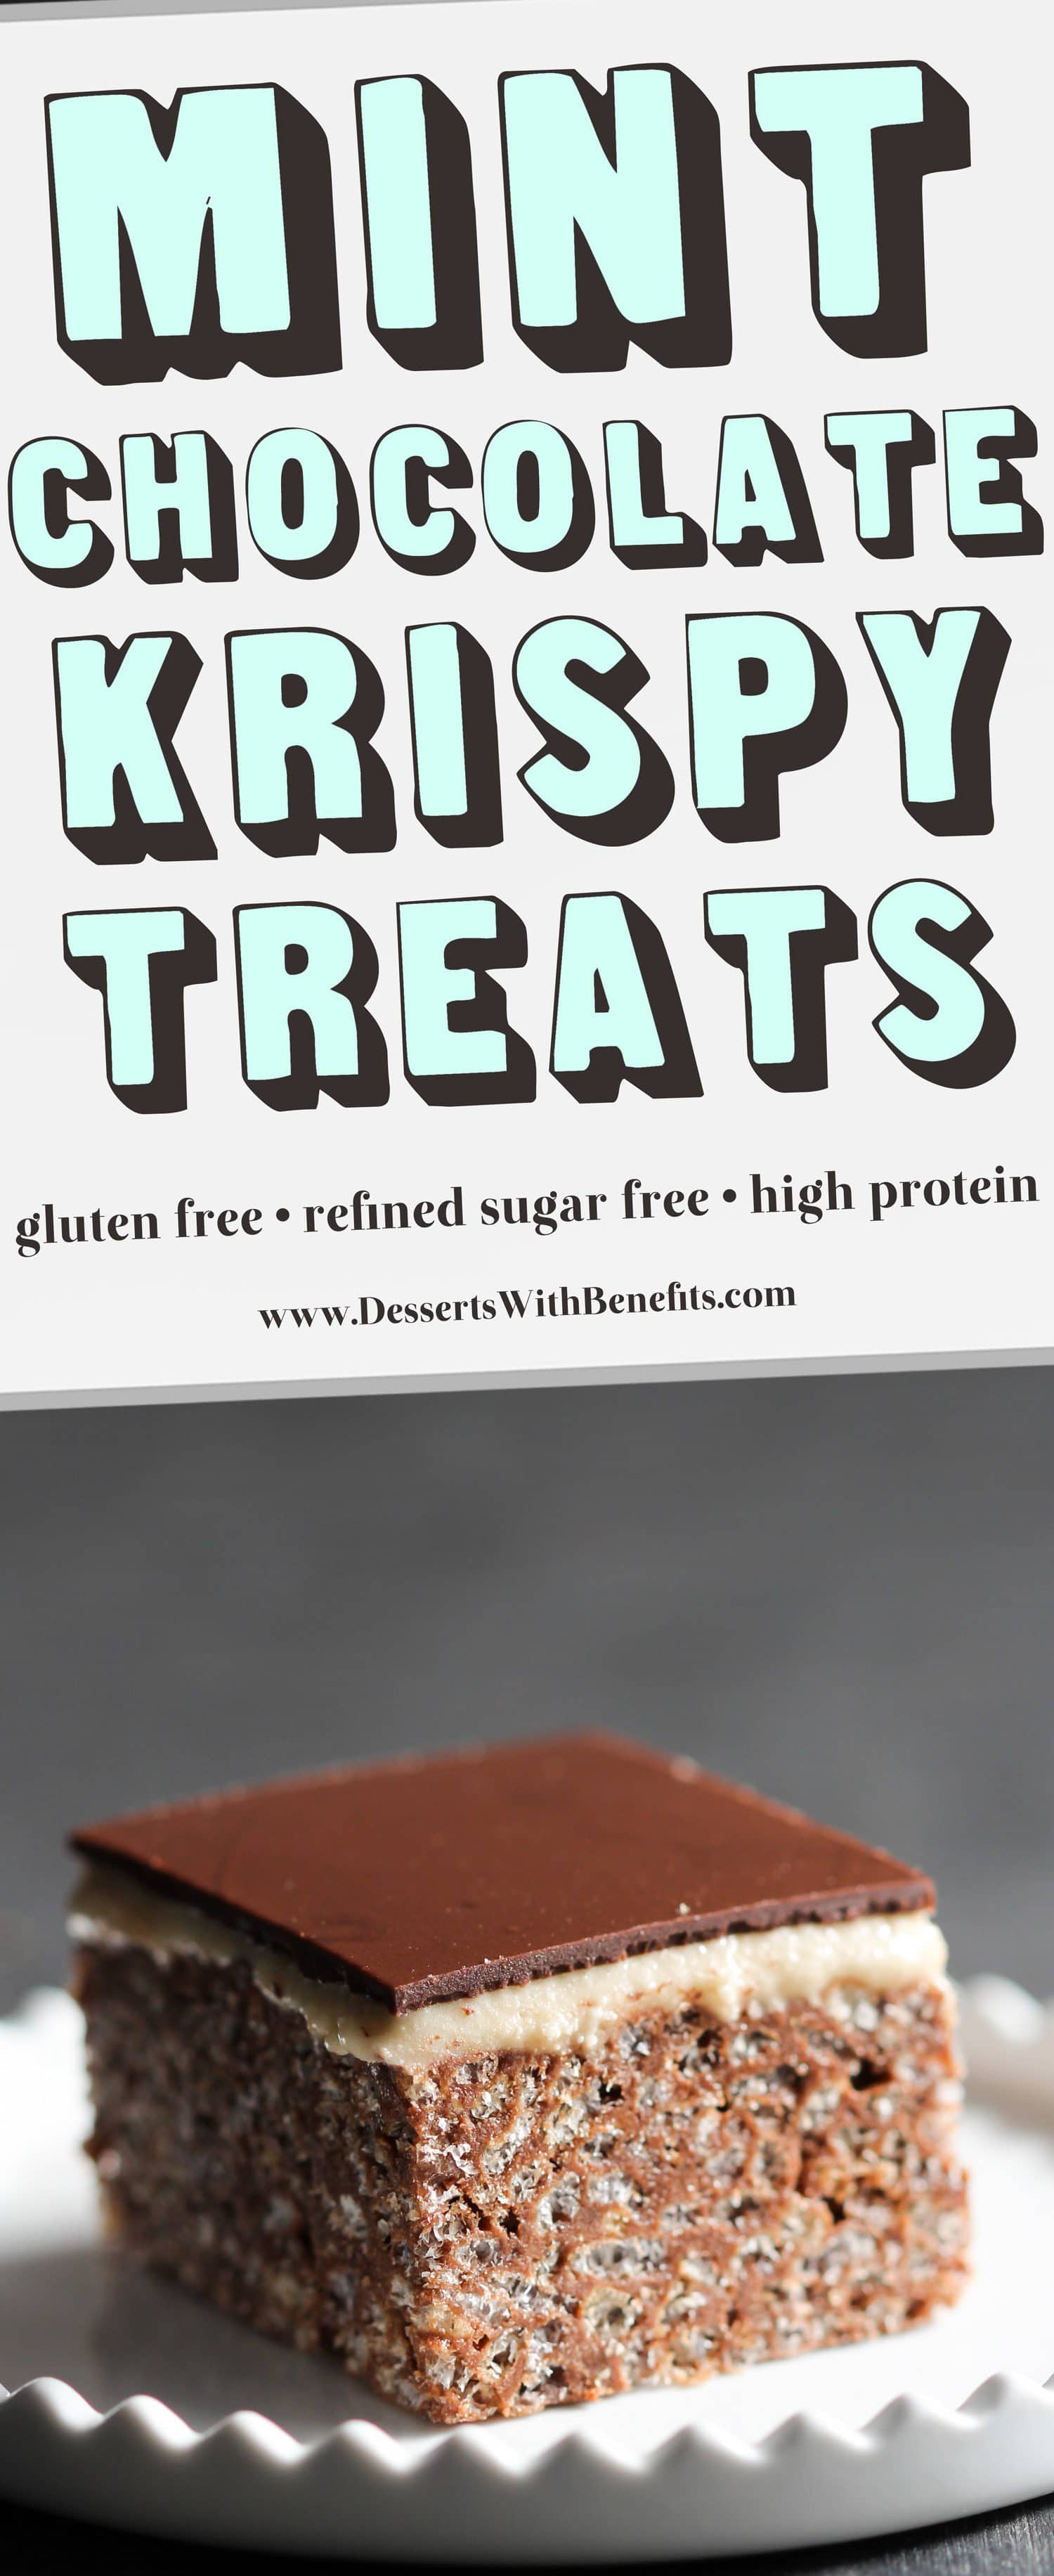 These Mint Chocolate Krispy Treats are crunchy, chewy, sweet, rich, and UBER decadent. You'd never know they're healthy! Oh yes, these are refined sugar free, high protein, and gluten free too. Healthy Dessert Recipes at the Desserts With Benefits Blog (www.DessertsWithBenefits.com)